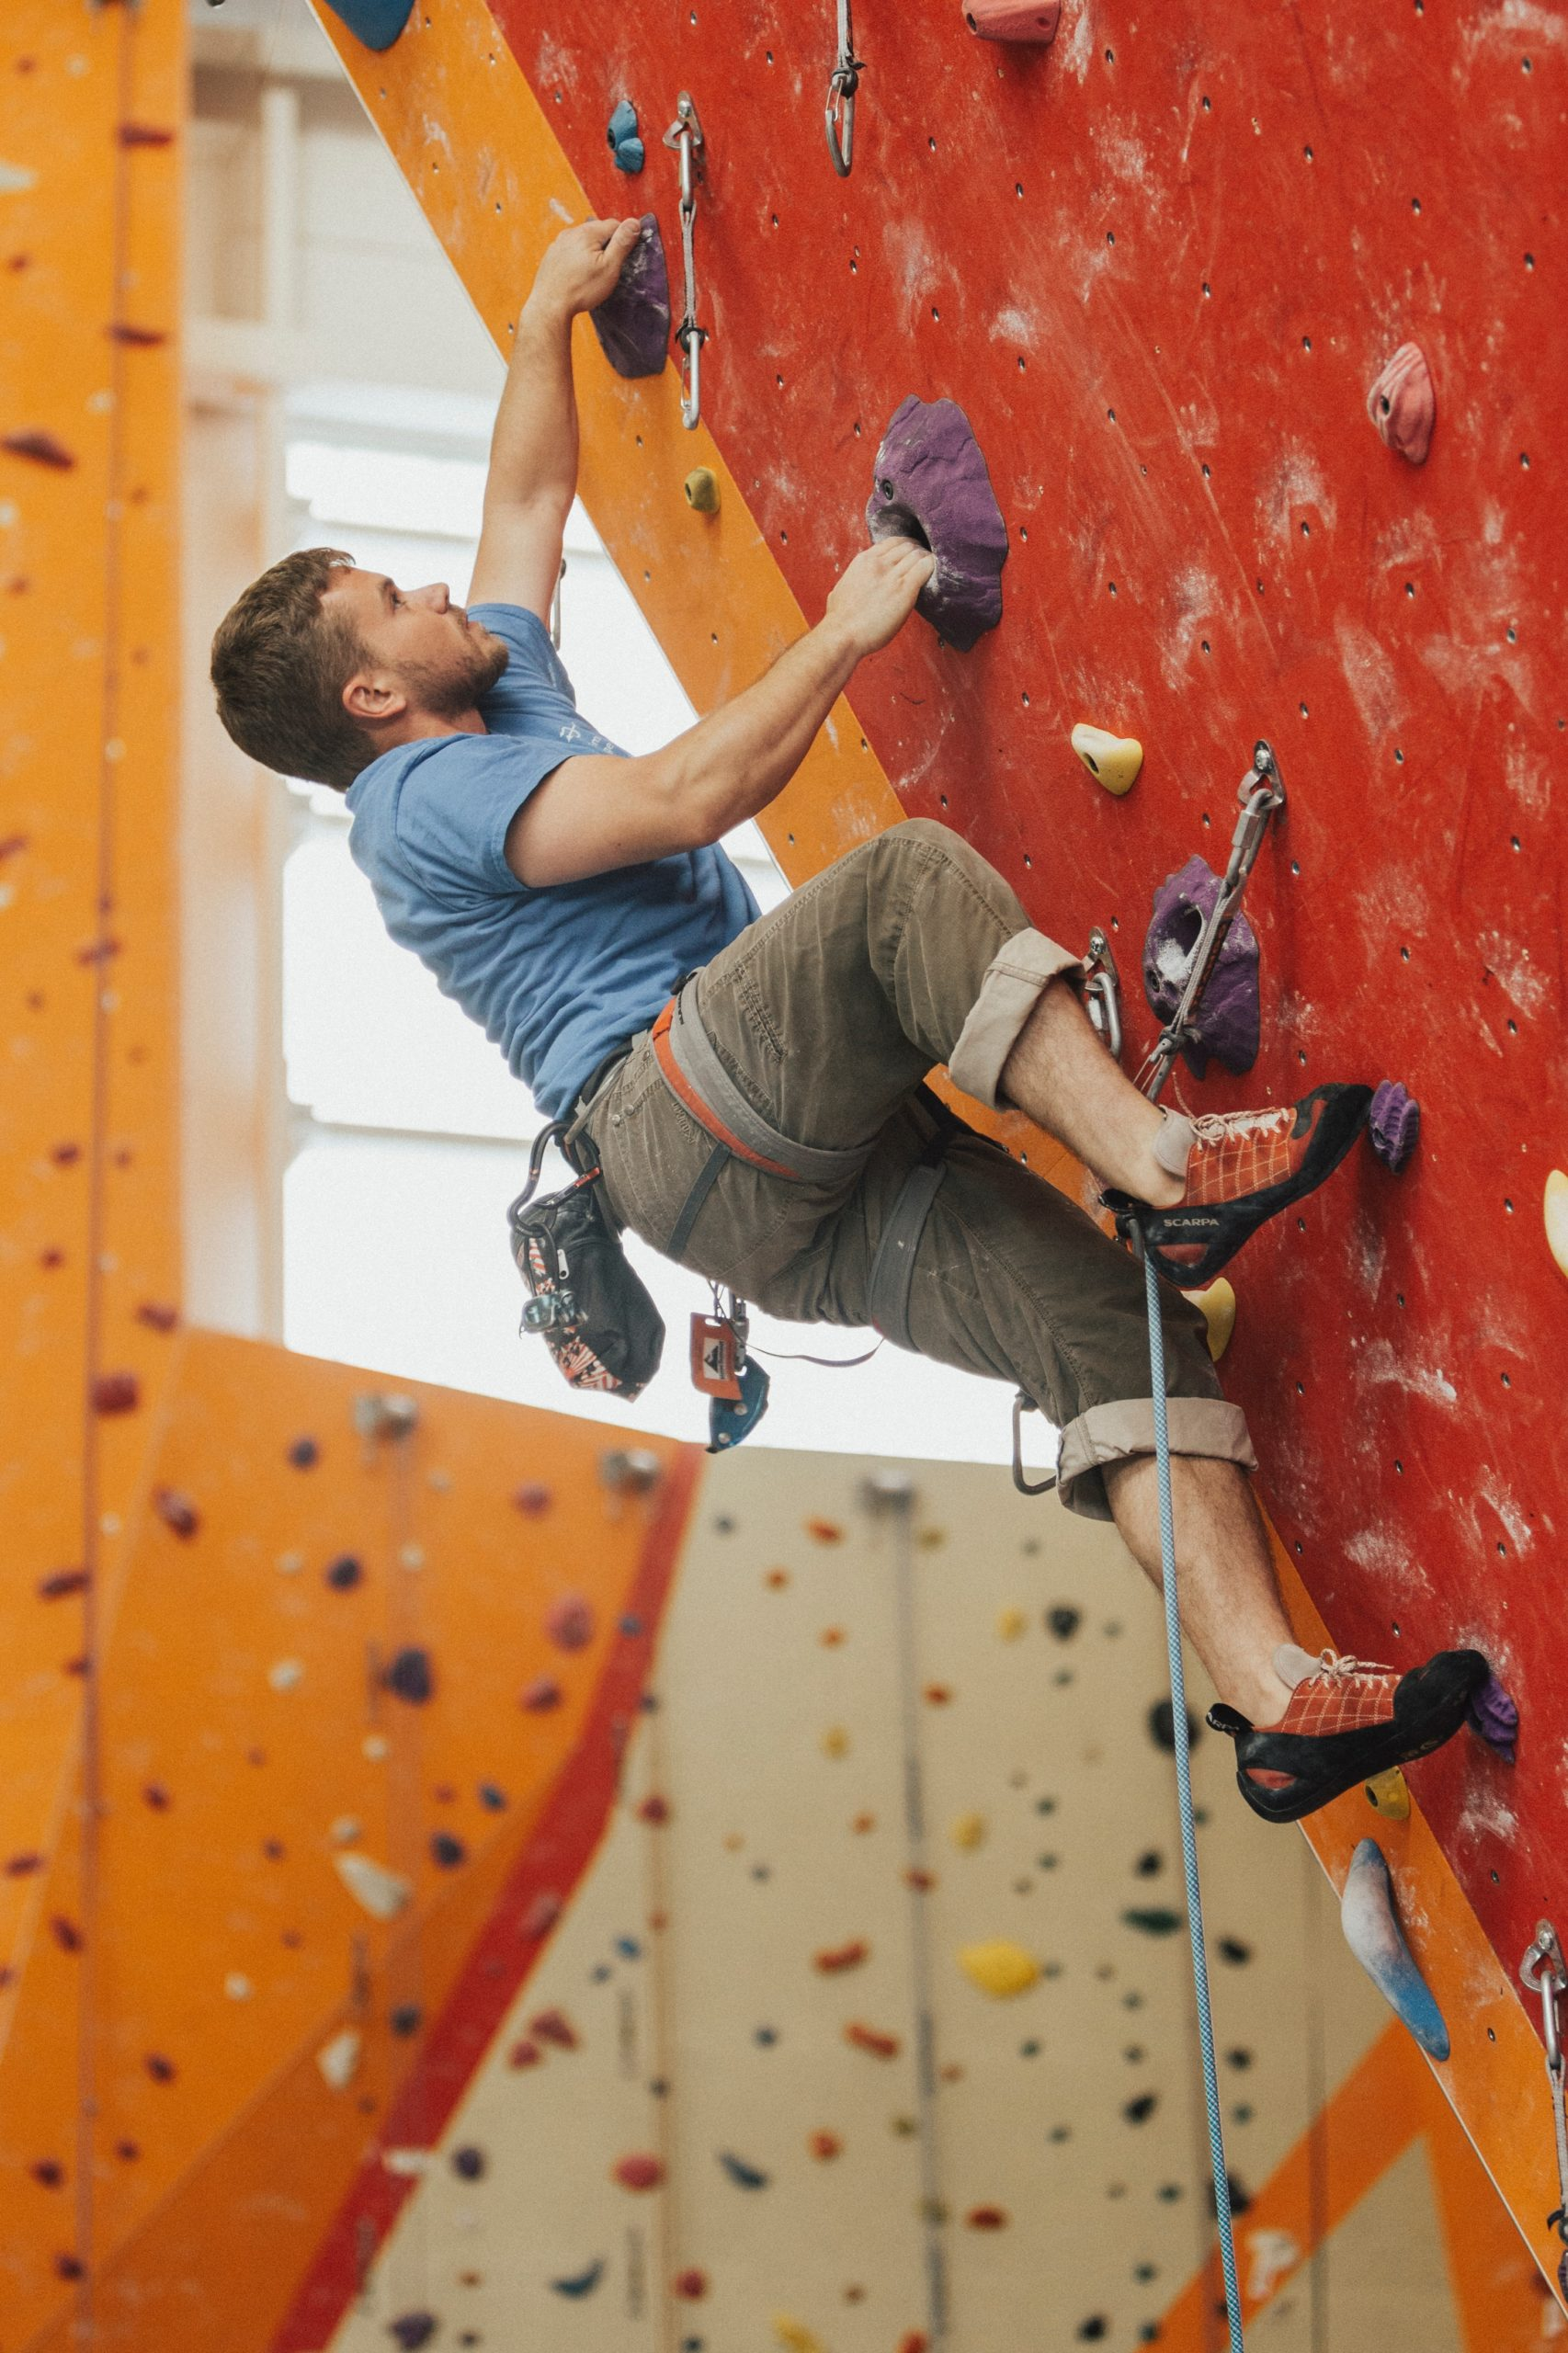 Beginners Guide For Starting A Rock Climbing Gym